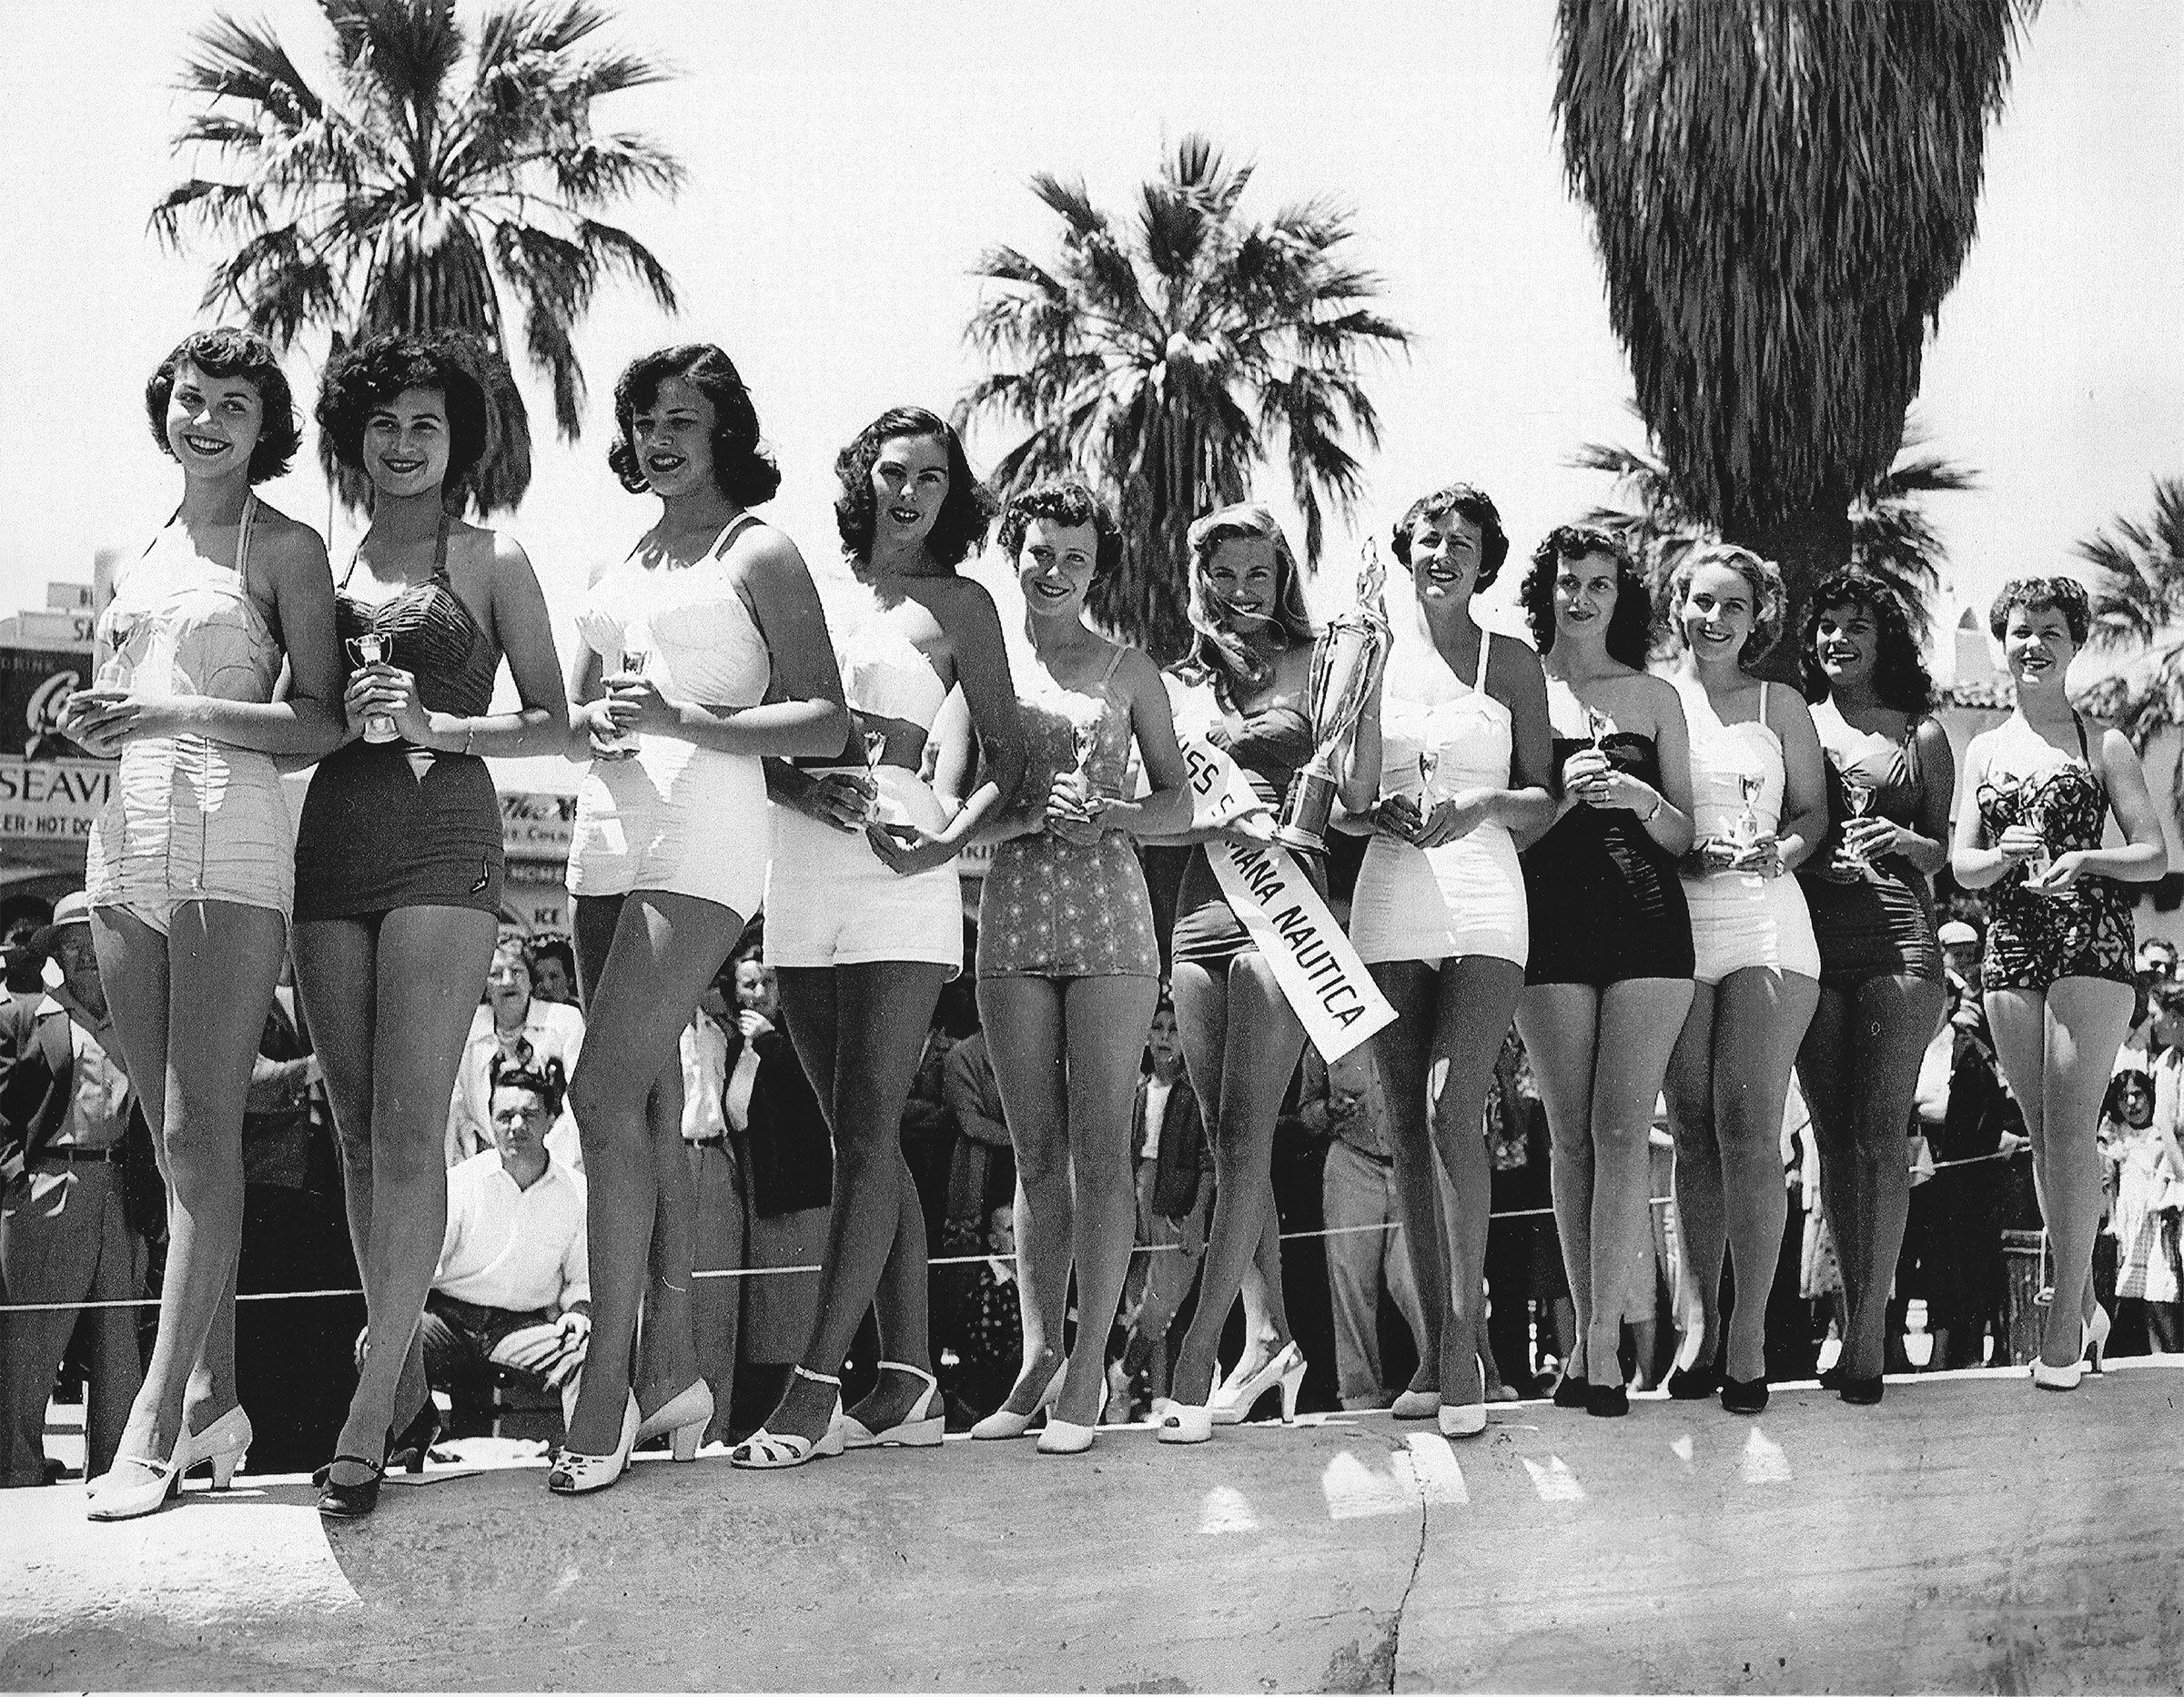 My Friend's Mom Miss Semana Nautica 1950's (guess which won she is).